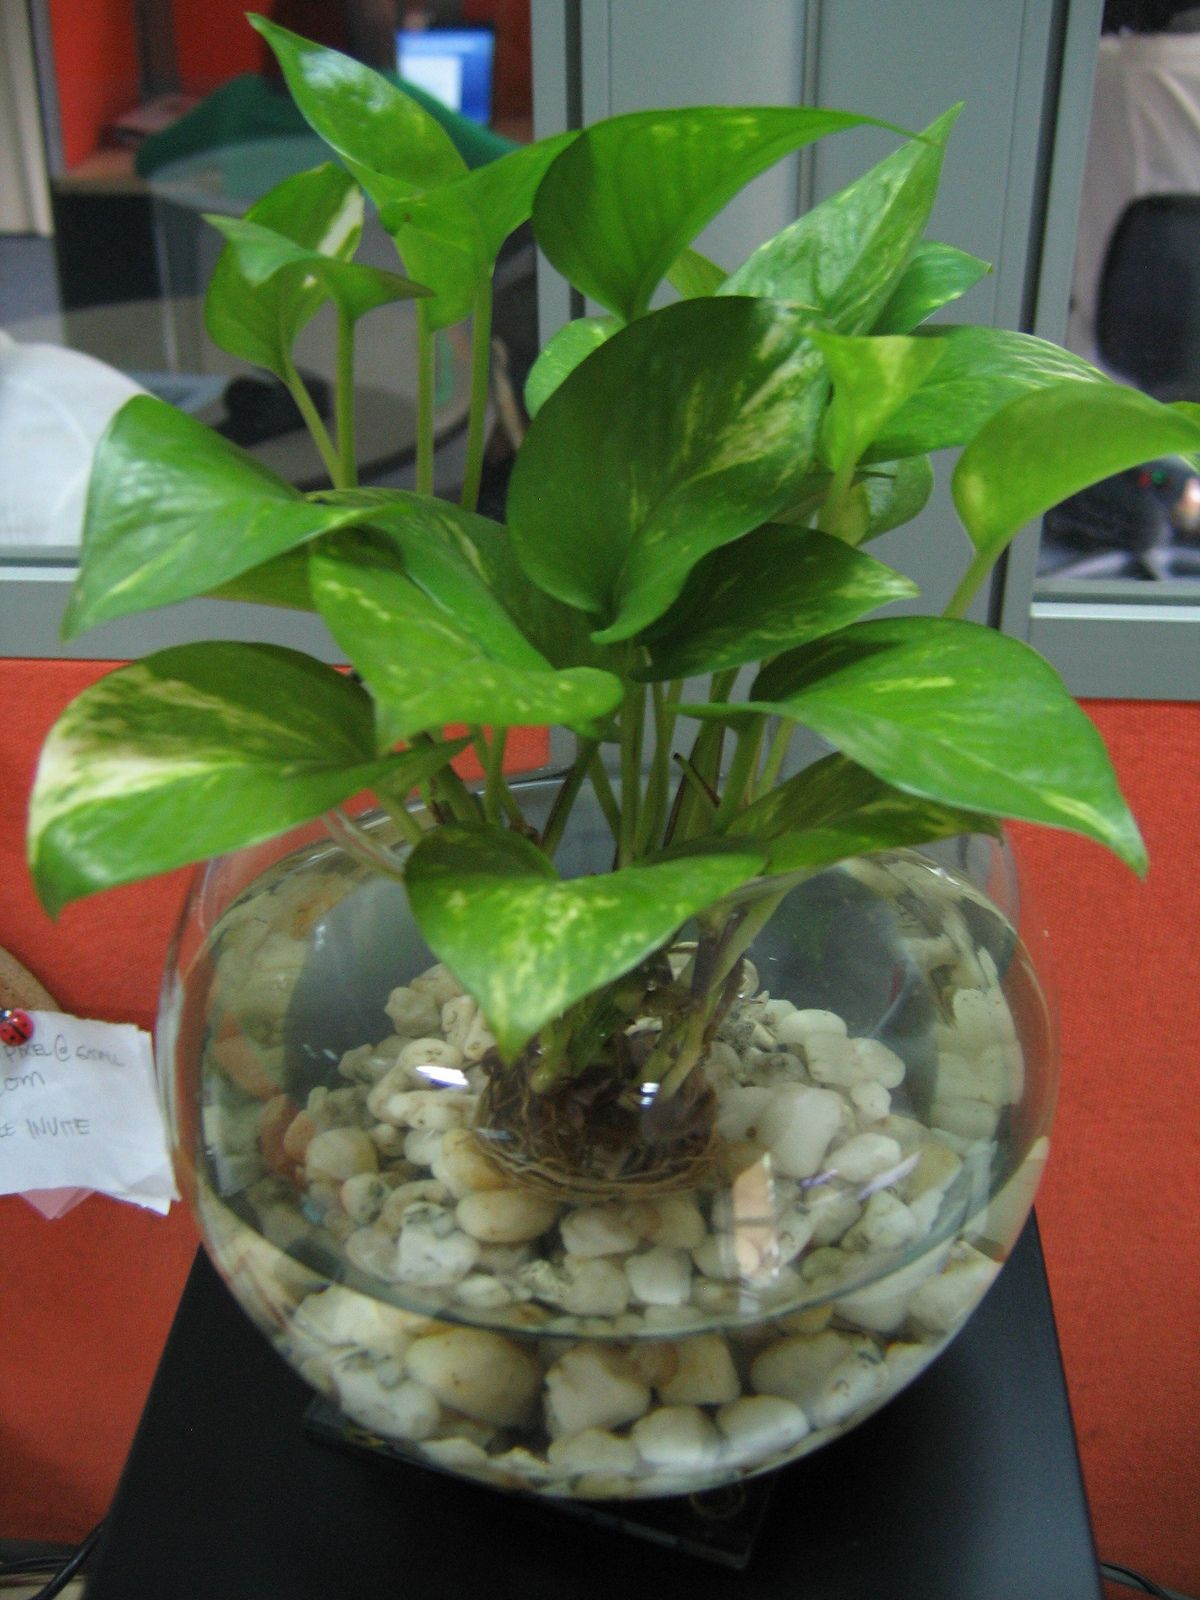 71556284901522422e0ahg 12001600 indoor herbs pinterest devils ivy in fish bowl maybe not in a fishbowl but i like the idea of a condensed plant reviewsmspy